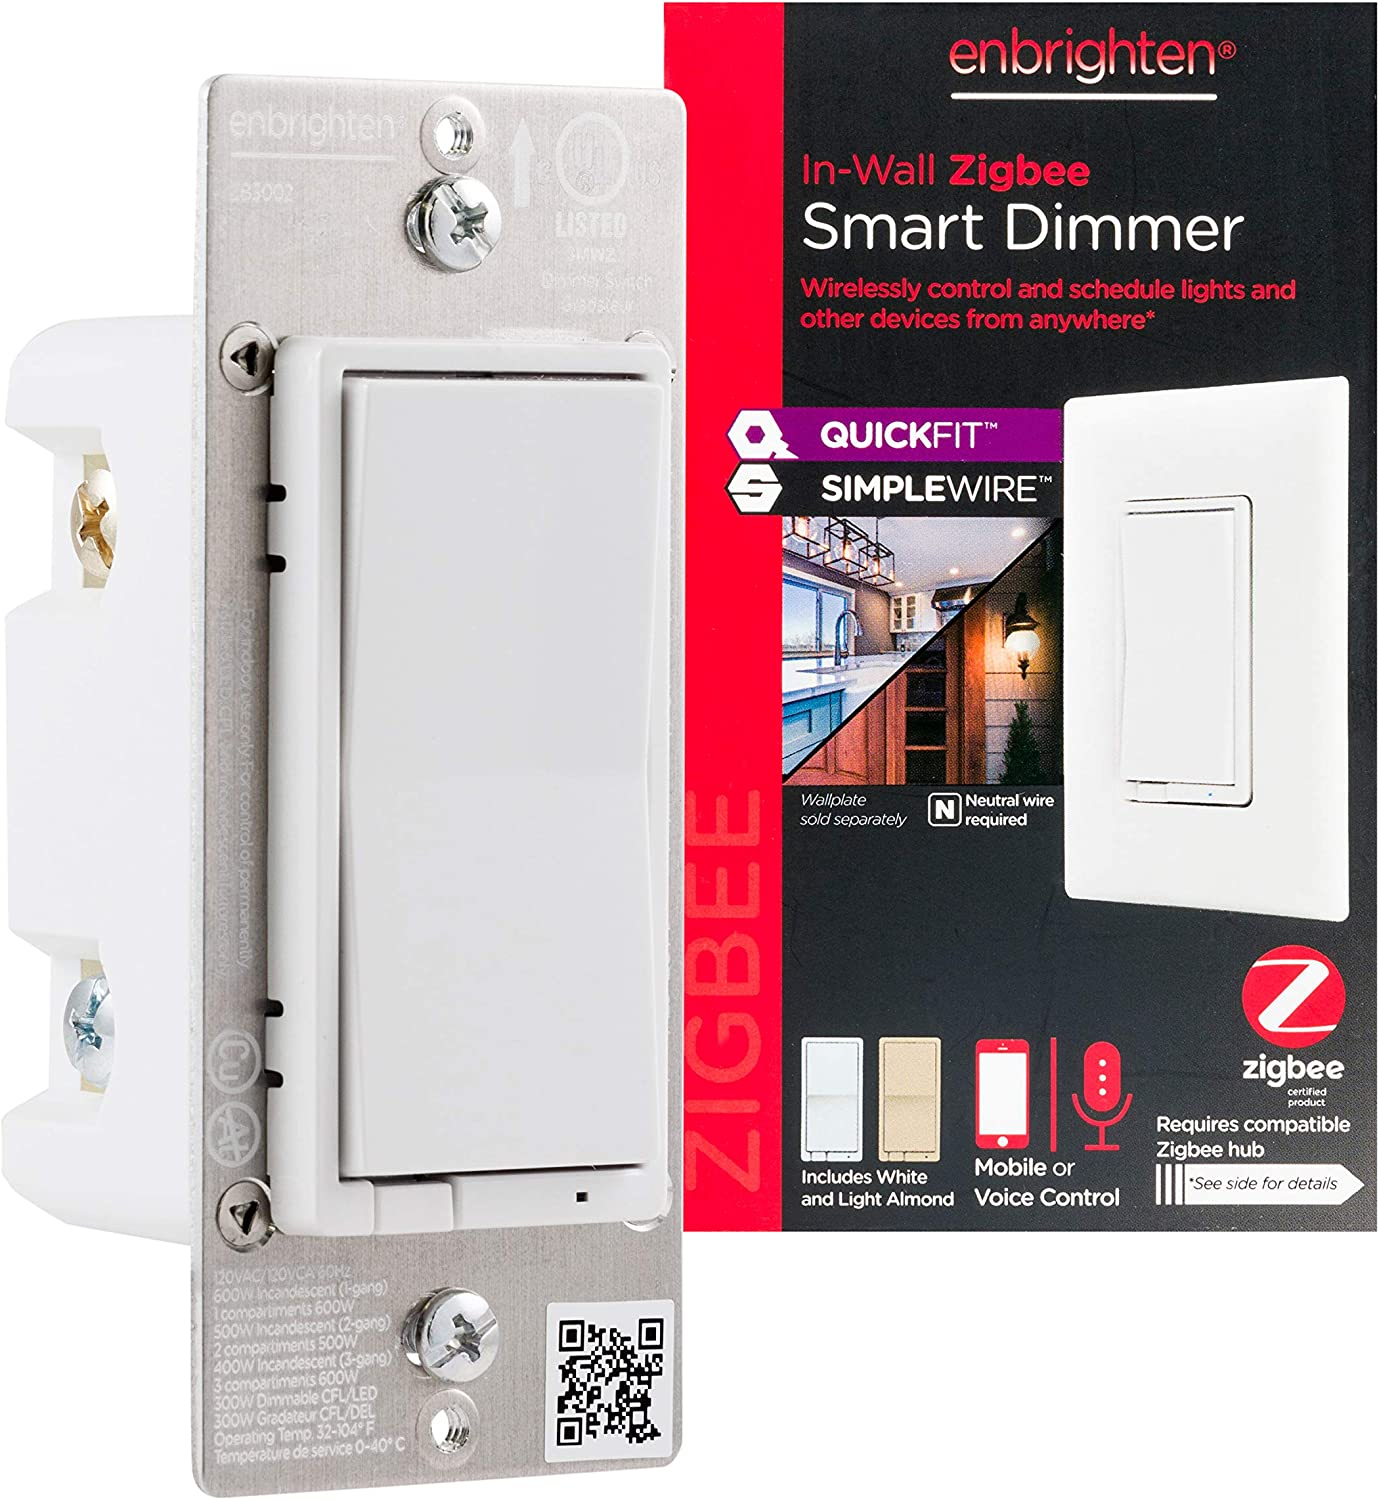 Enbrighten Zigbee Smart Light Dimmer with QuickFit and SimpleWire, Pairs Directly with Echo Studio/Echo Show 10/Echo Plus 1st & 2nd Gen, White & Light Almond, 43080